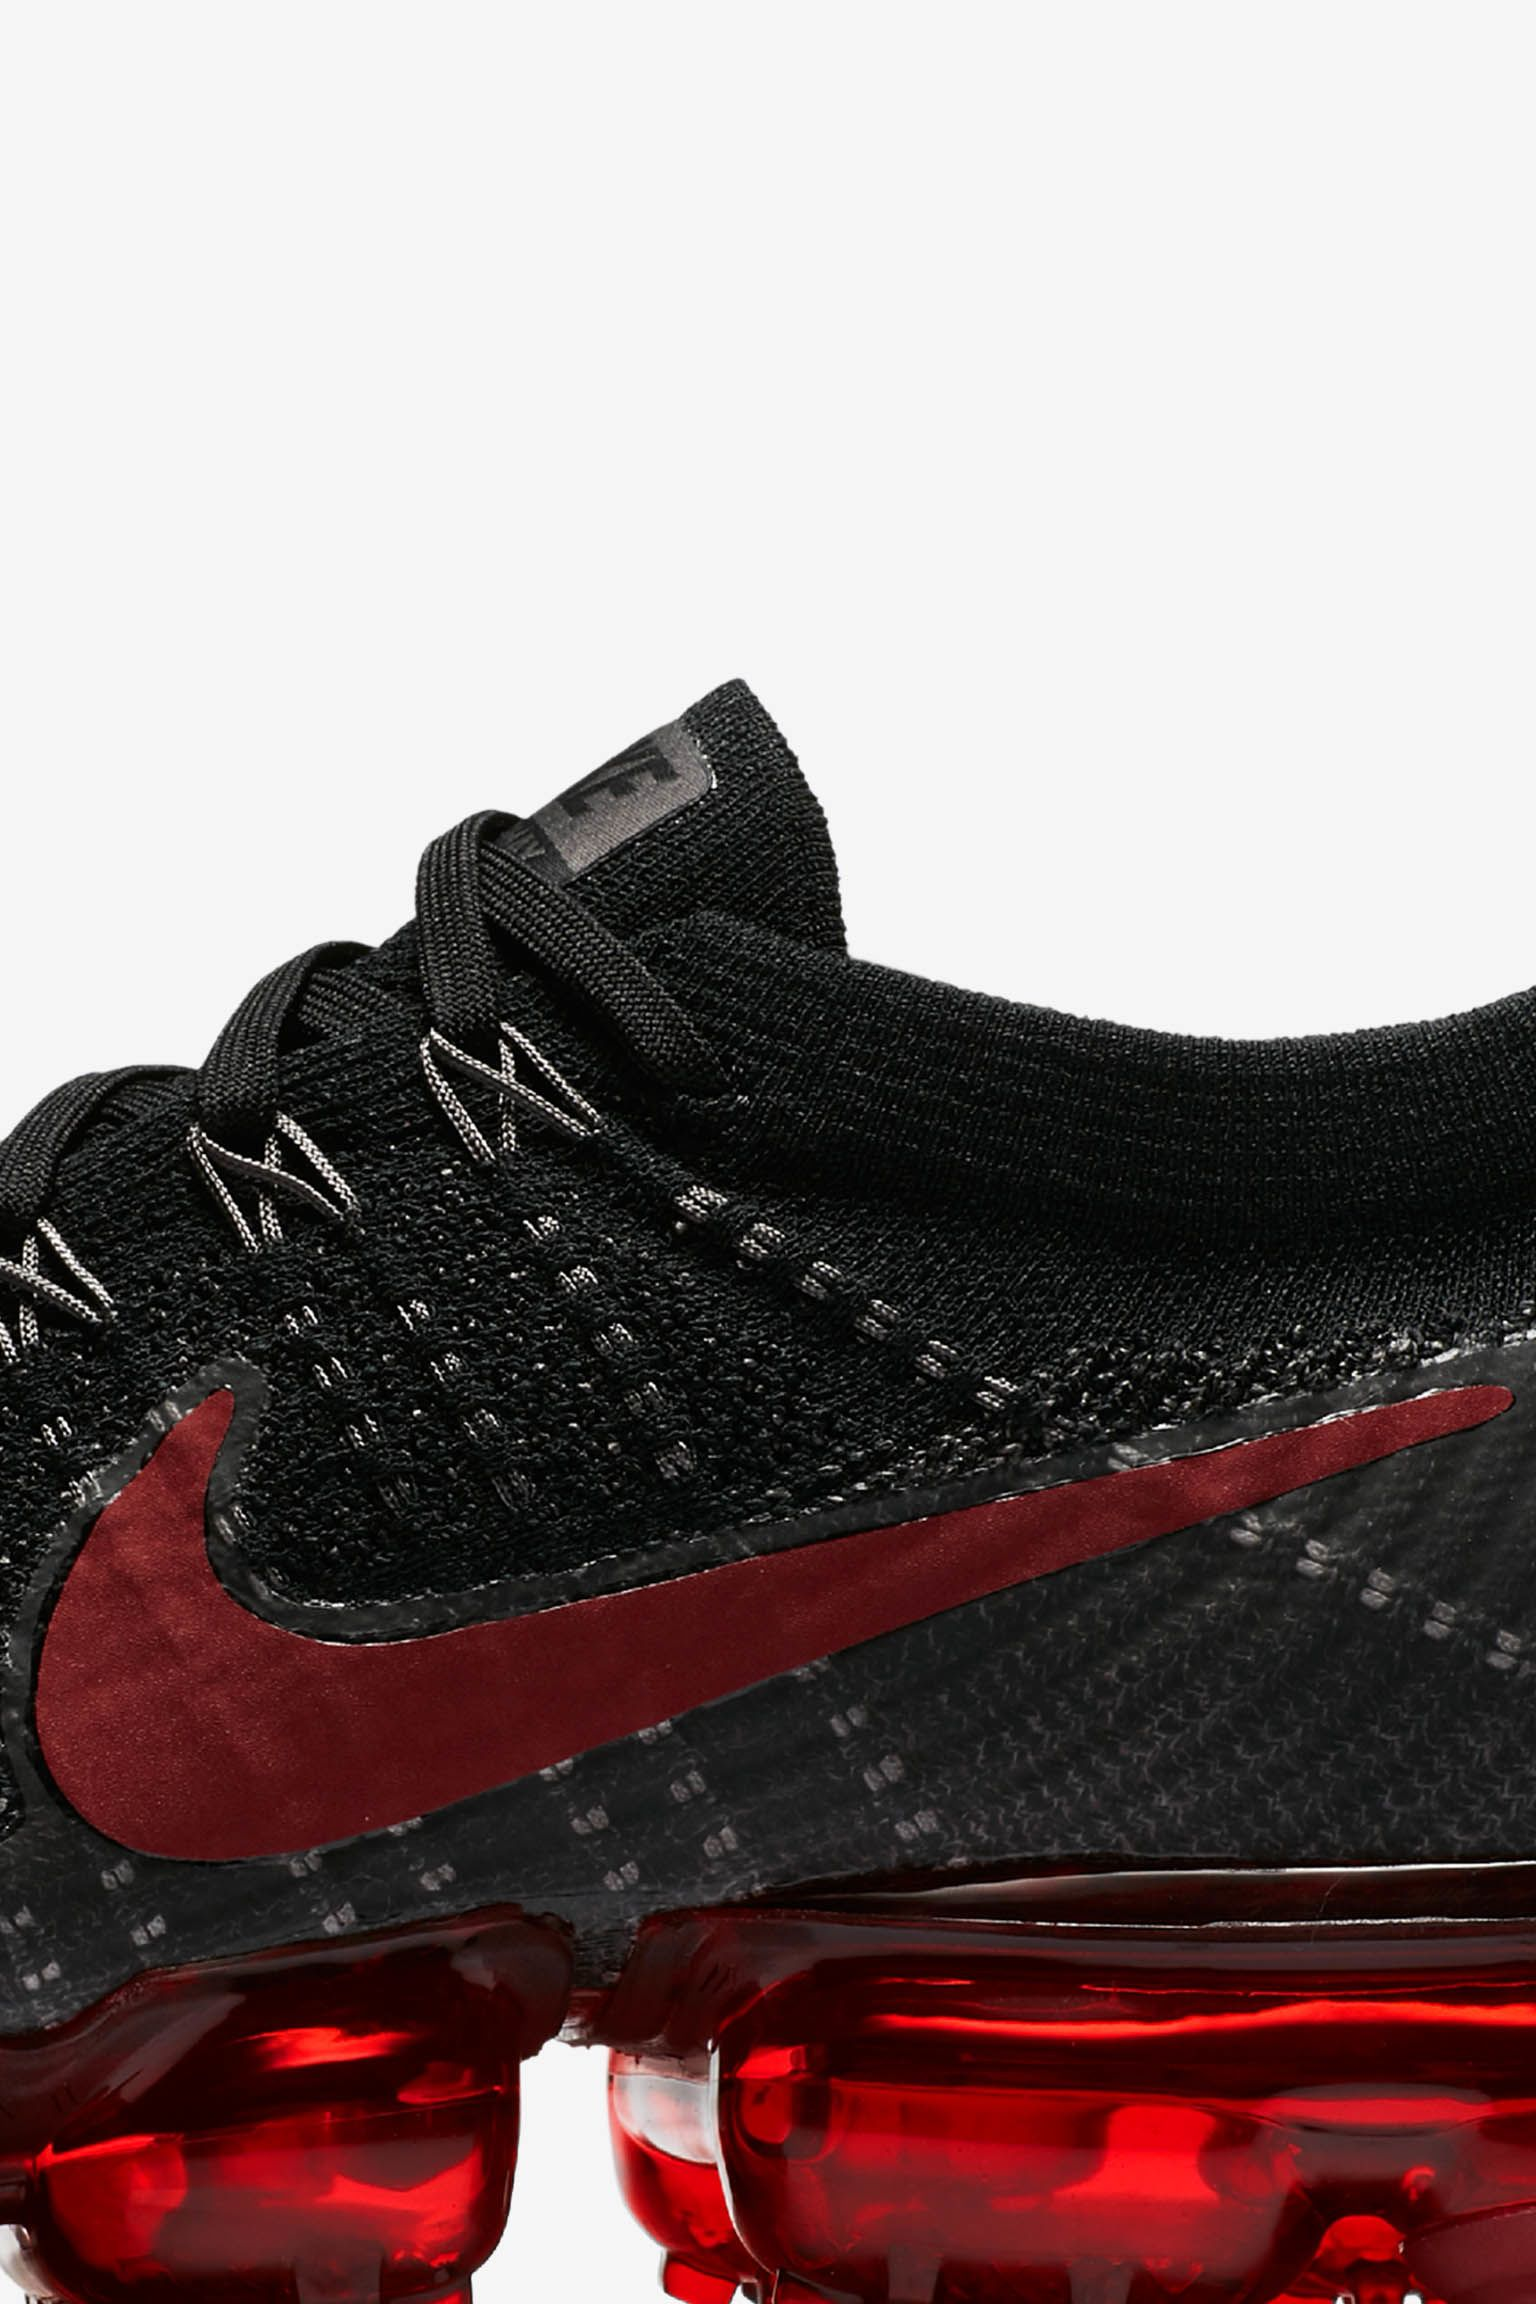 Nike Air VaporMax 'Black & Dark Team Red' Release Date